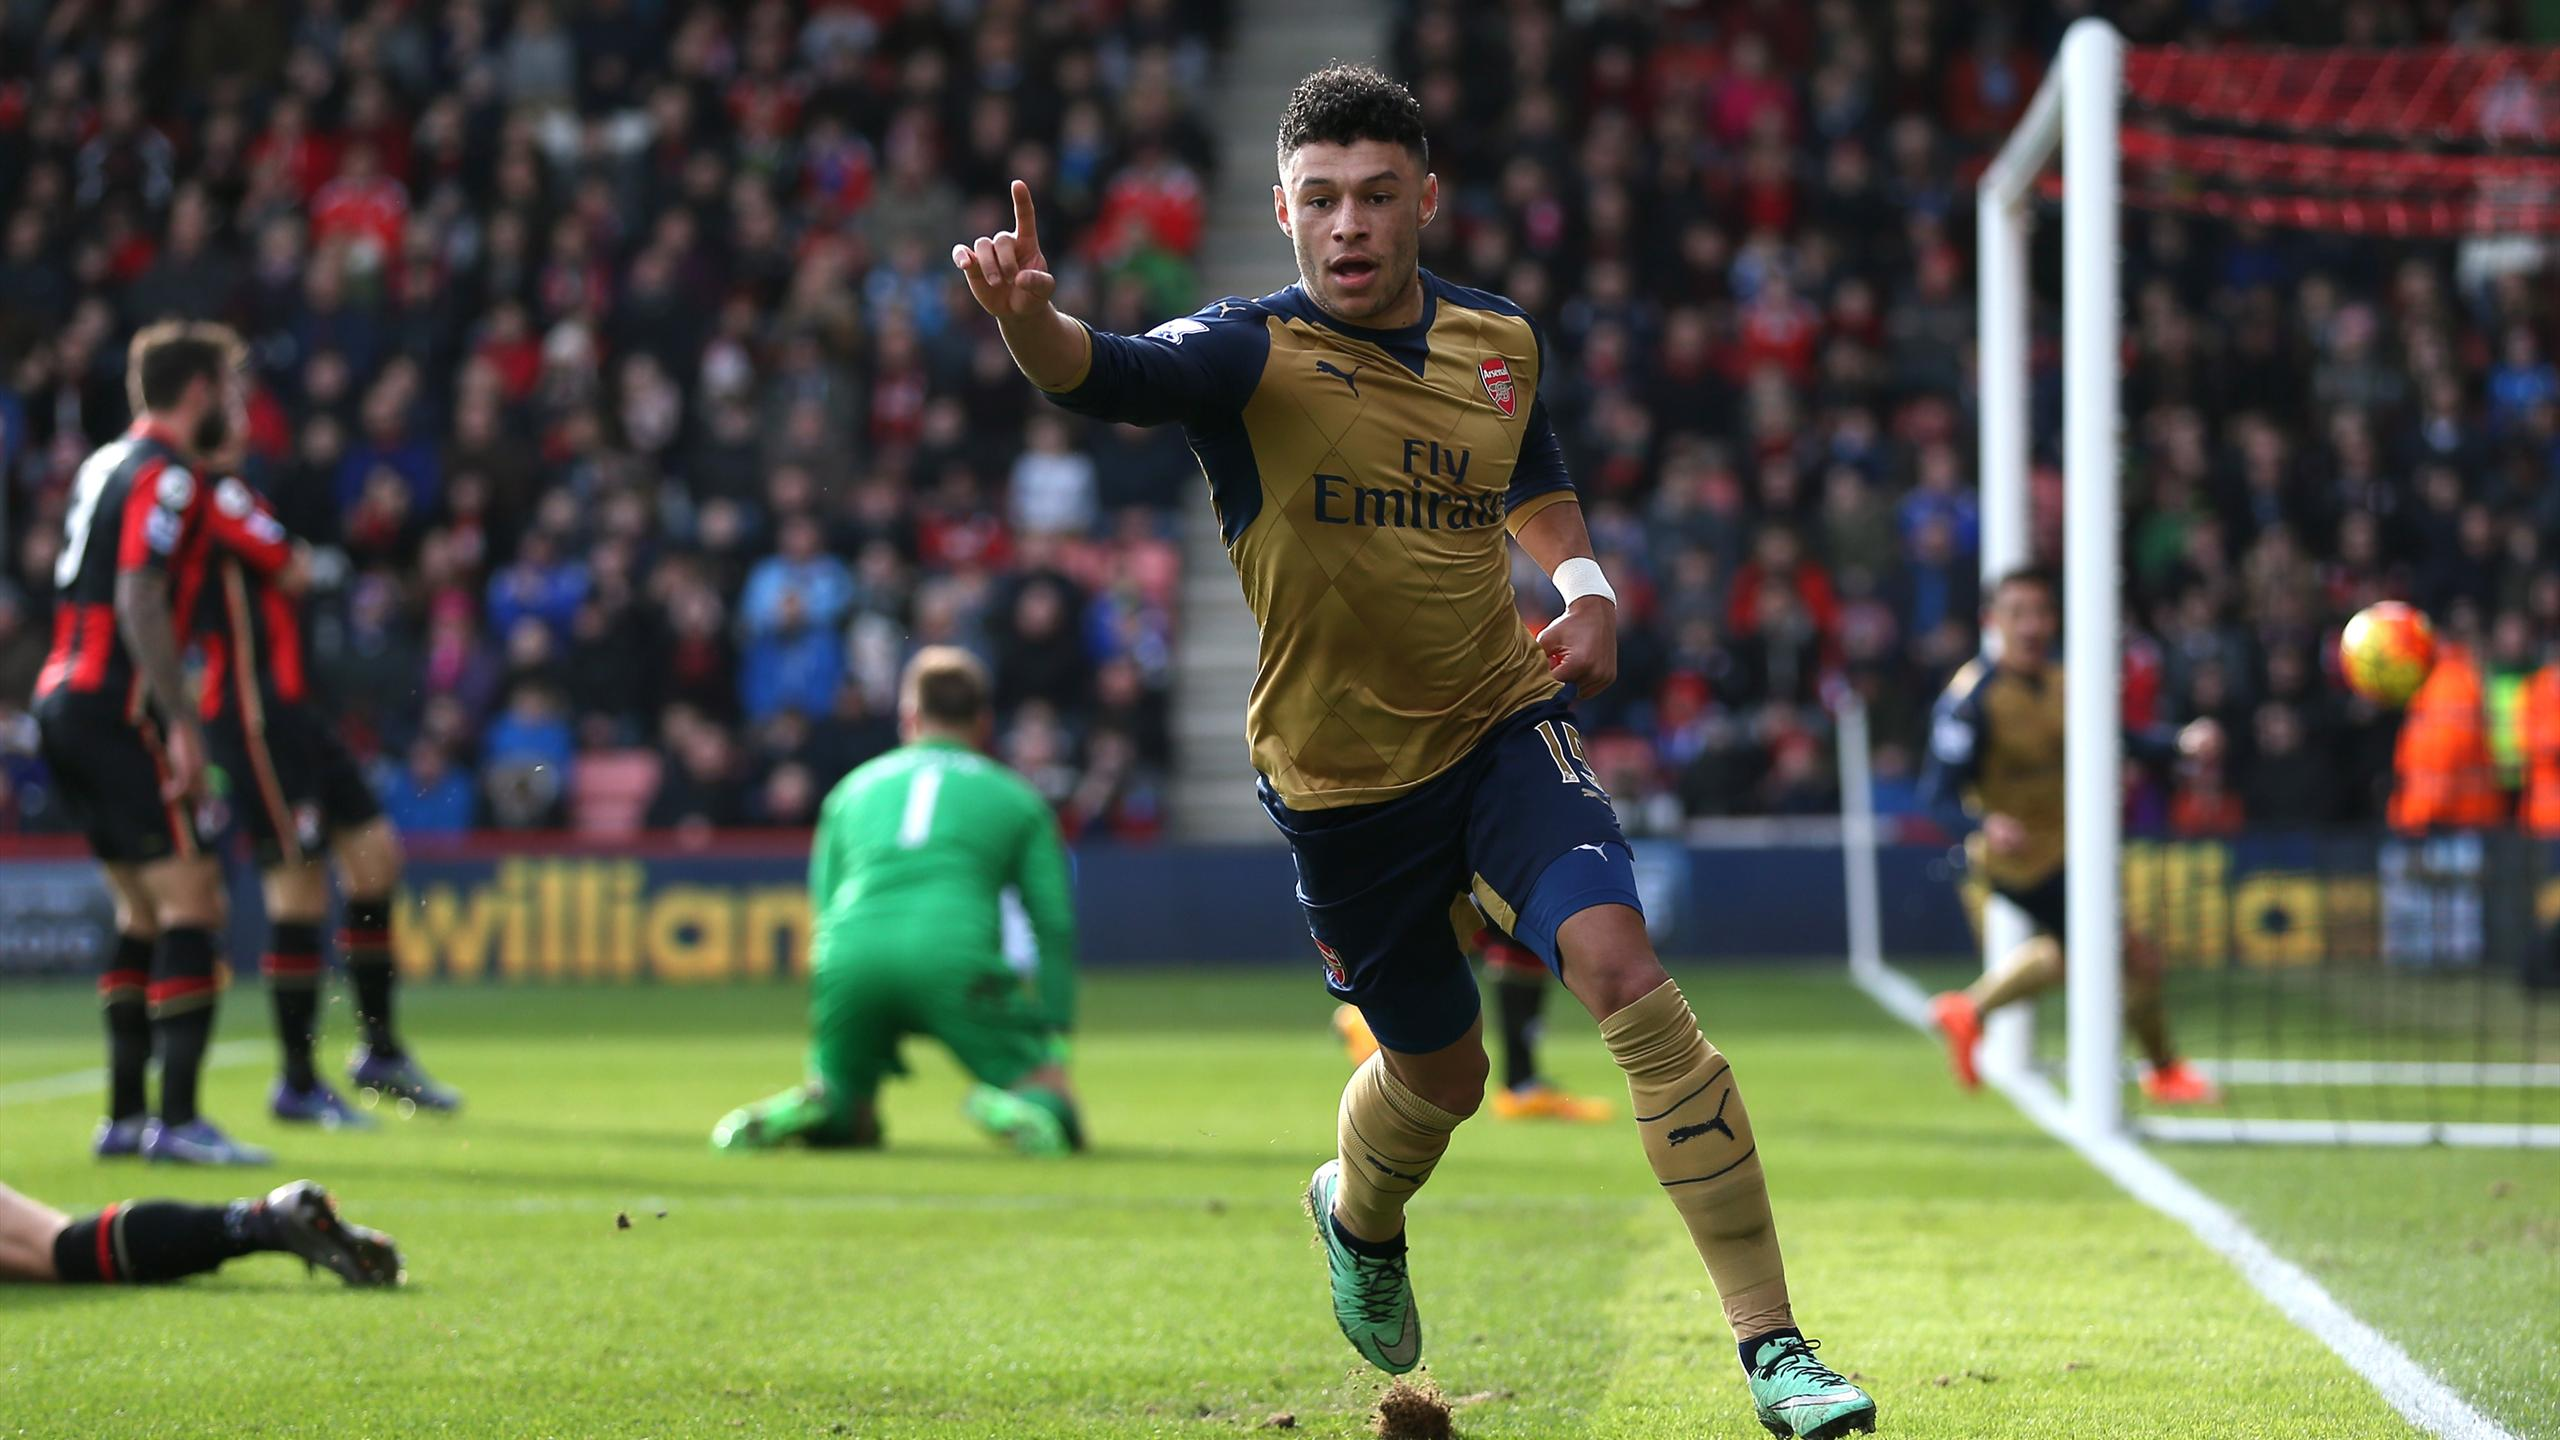 Alex Oxlade-Chamberlain celebrates scoring for Arsenal against Bournemouth